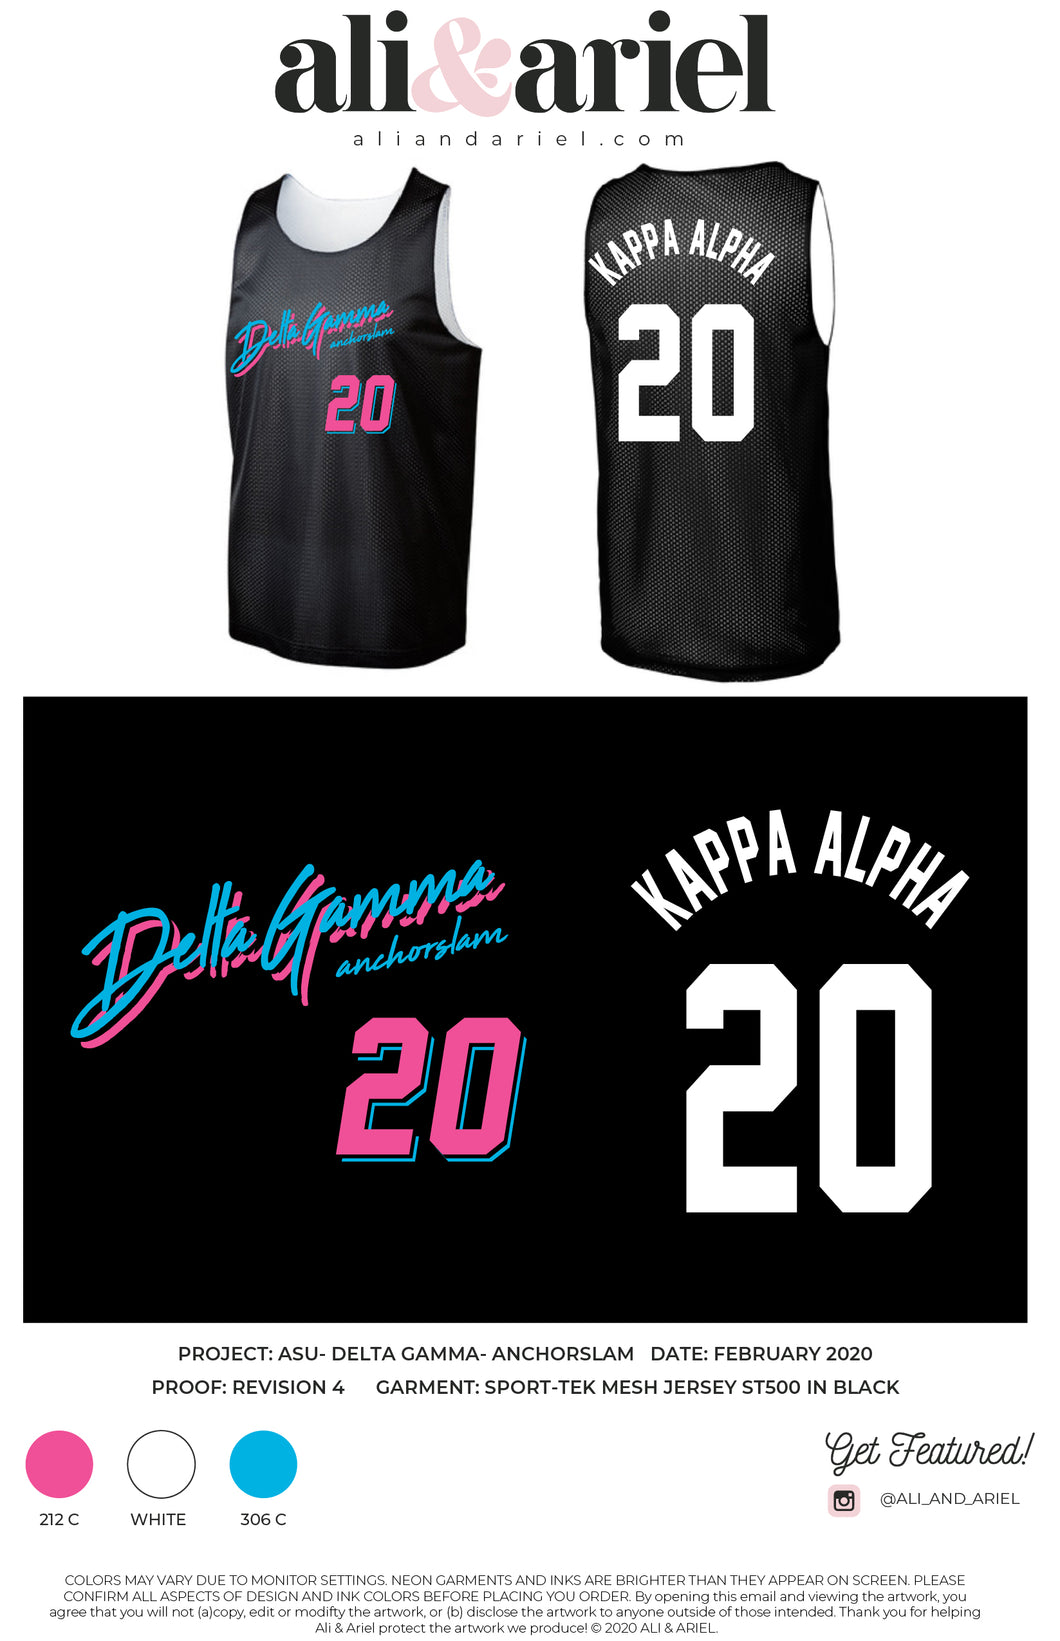 KAPPA ALPHA. ASU- DG- Anchorslam JERSEYS